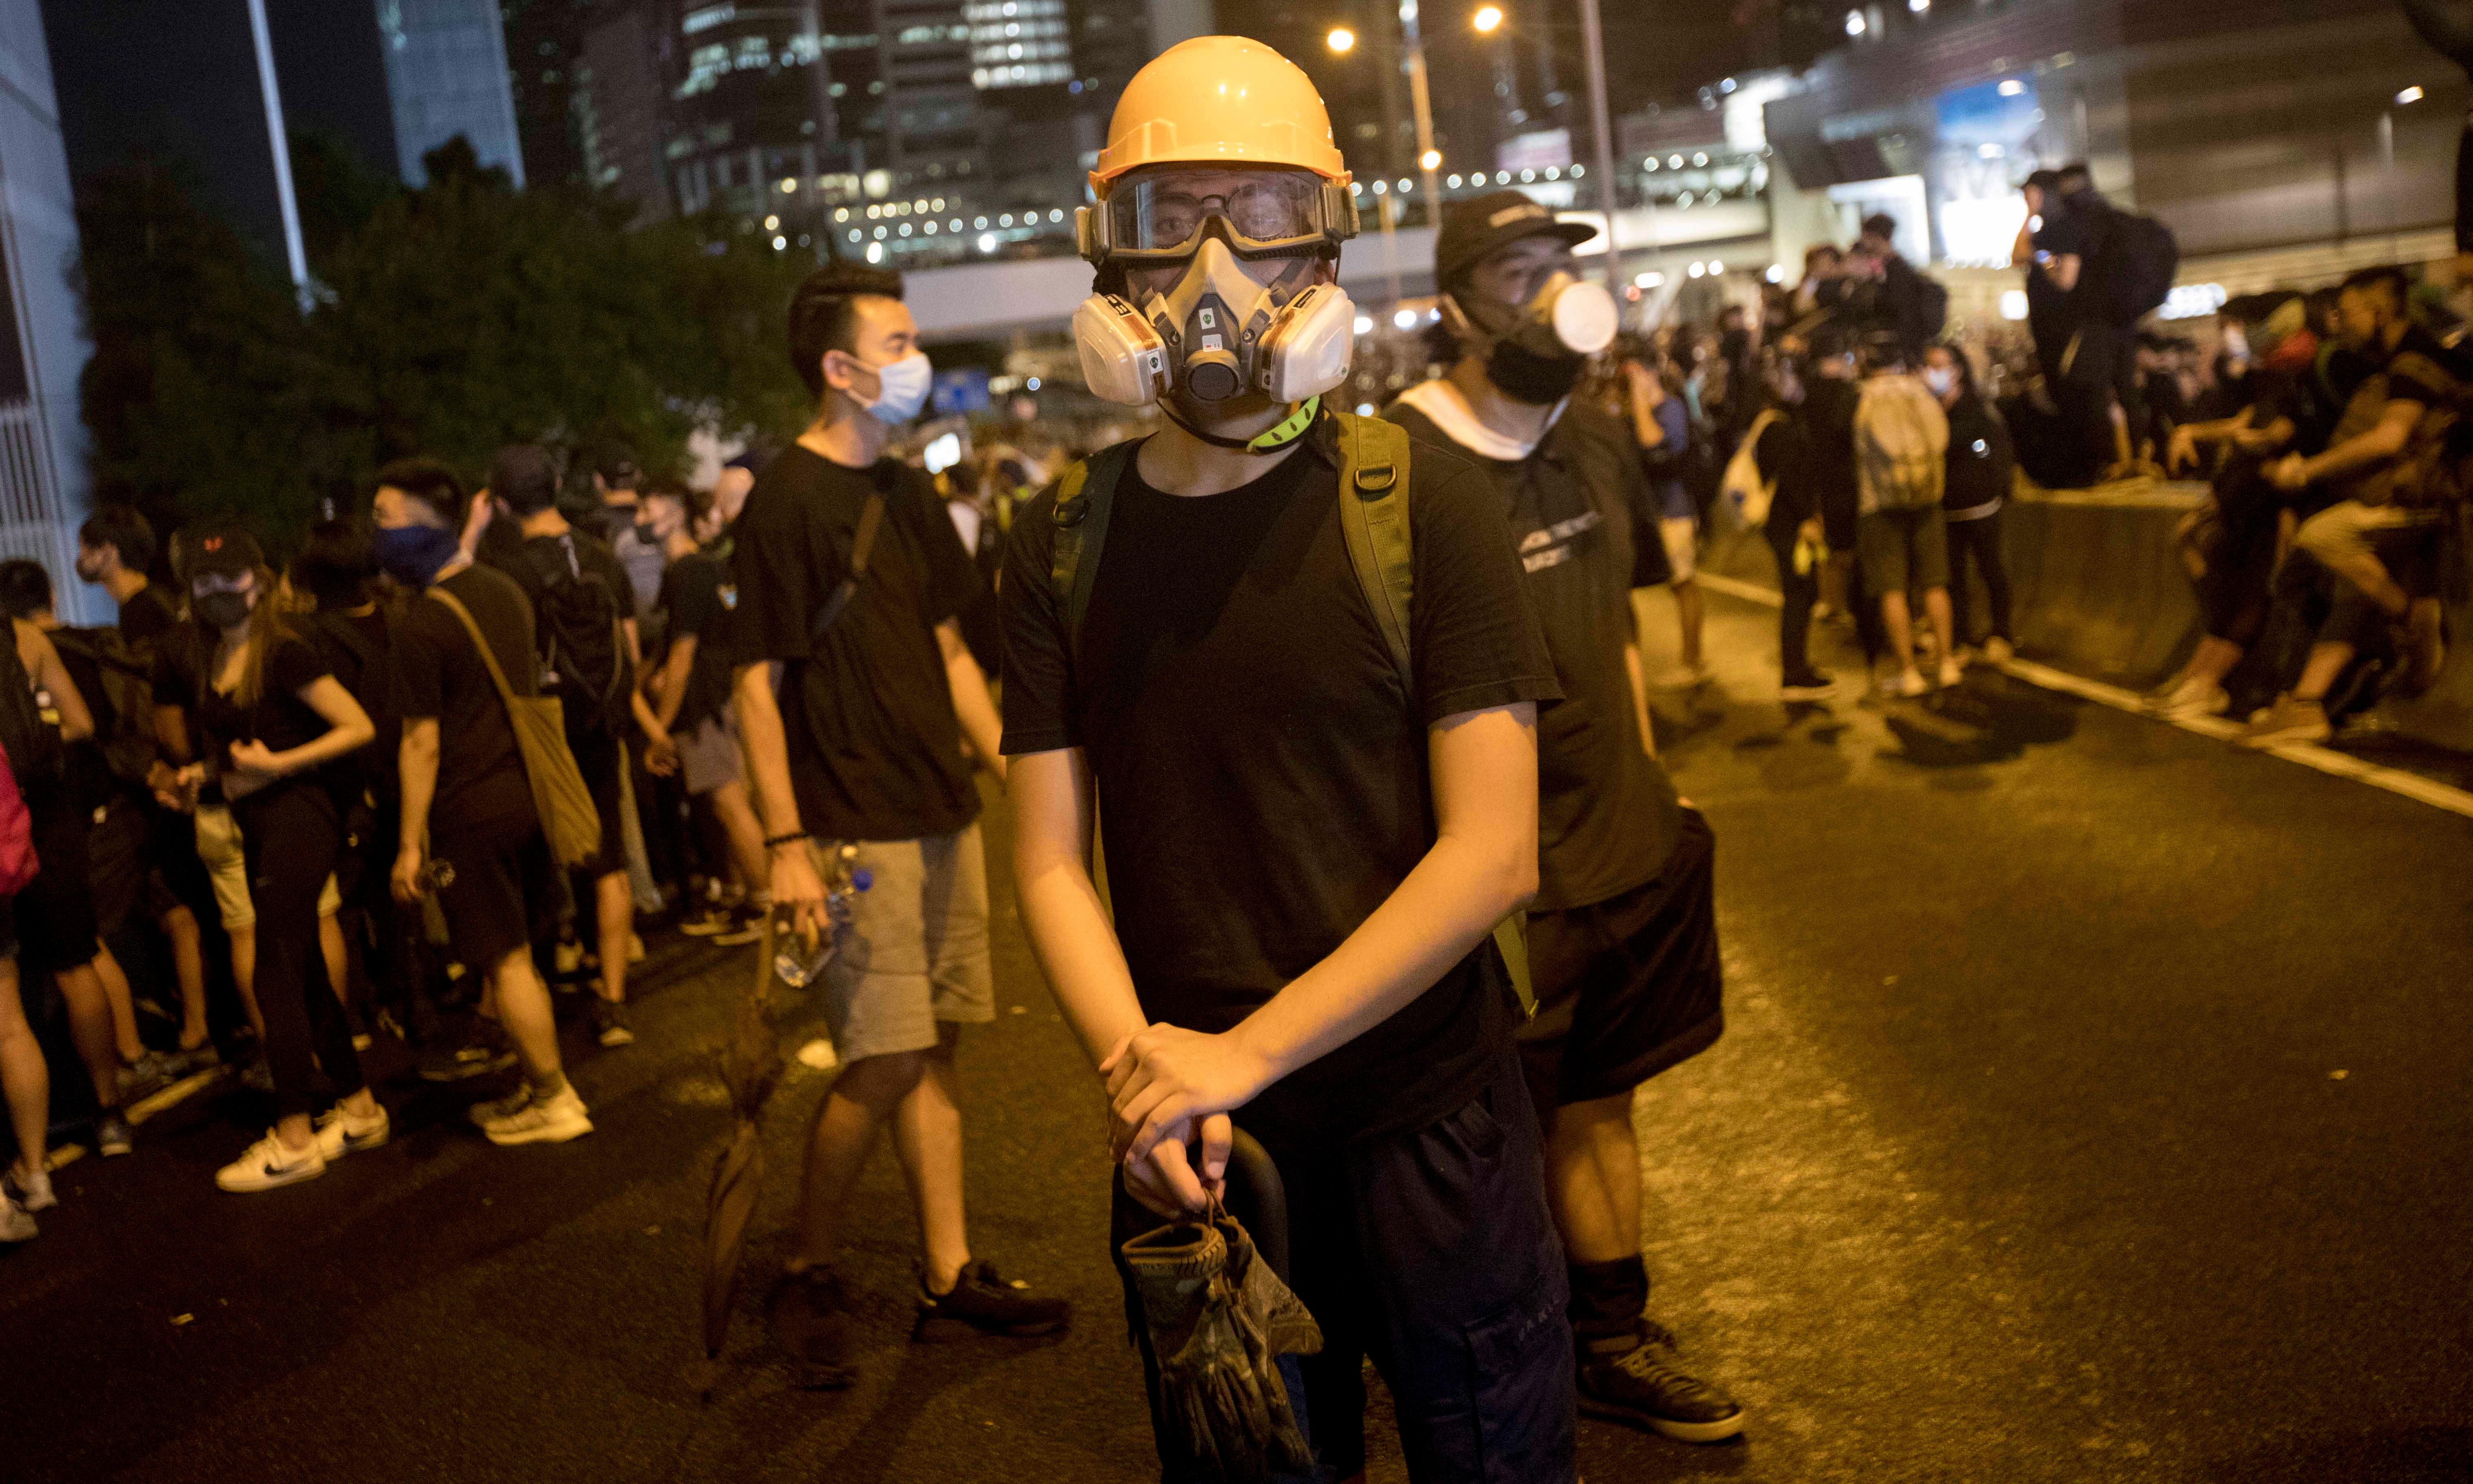 'We must defend our city': A day in the life of a Hong Kong protester